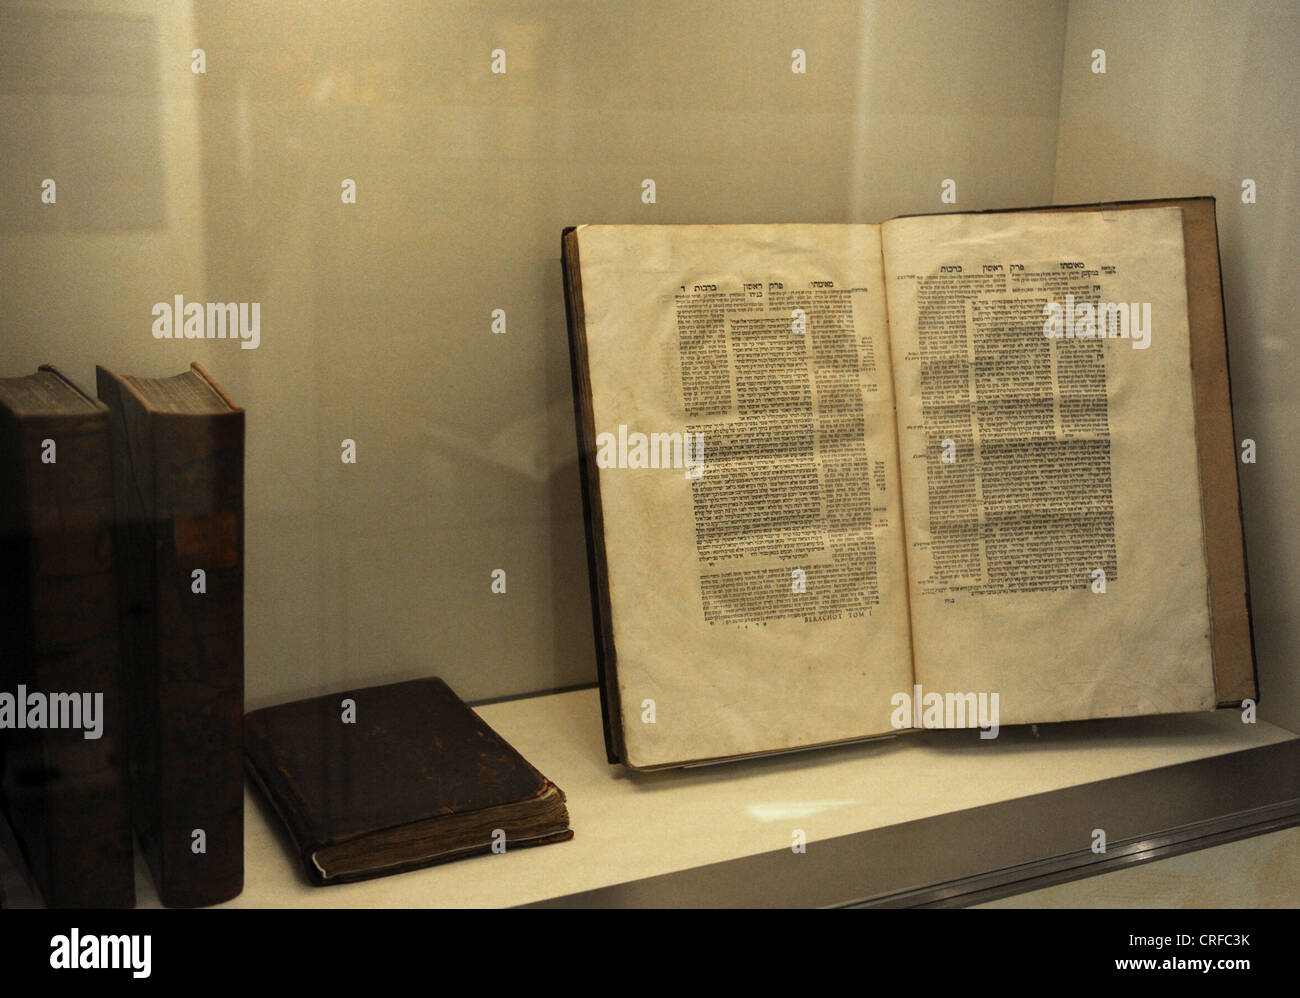 Talmud, the book containing the rabbinical discussions on Jewish law, traditions and customs. Jewish Museum Berlin. - Stock Image